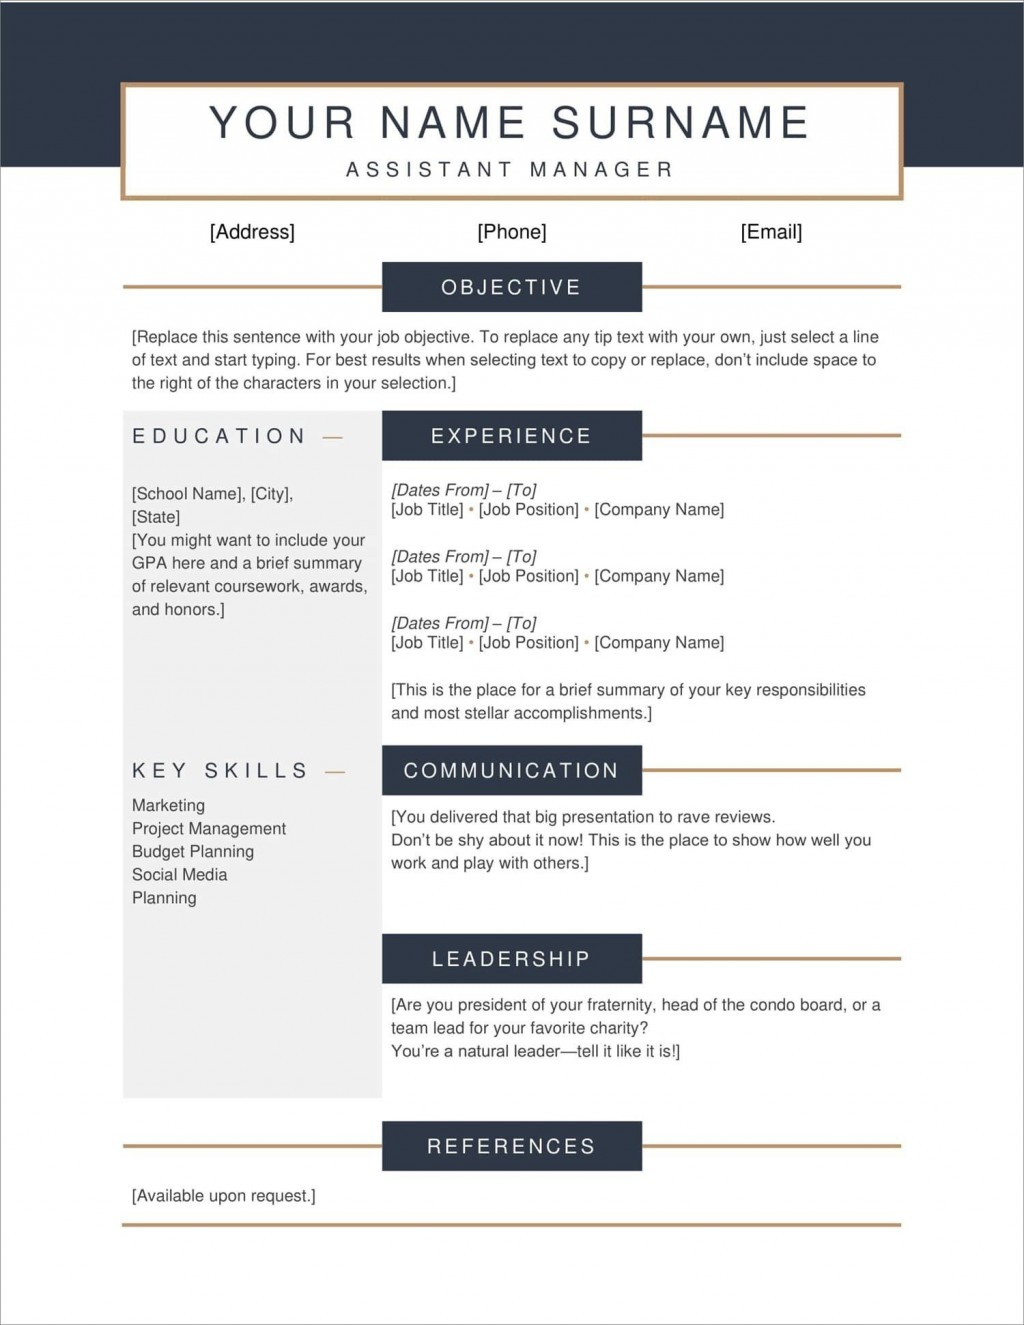 004 Rare Free Printable Resume Template 2019 Highest Quality Large